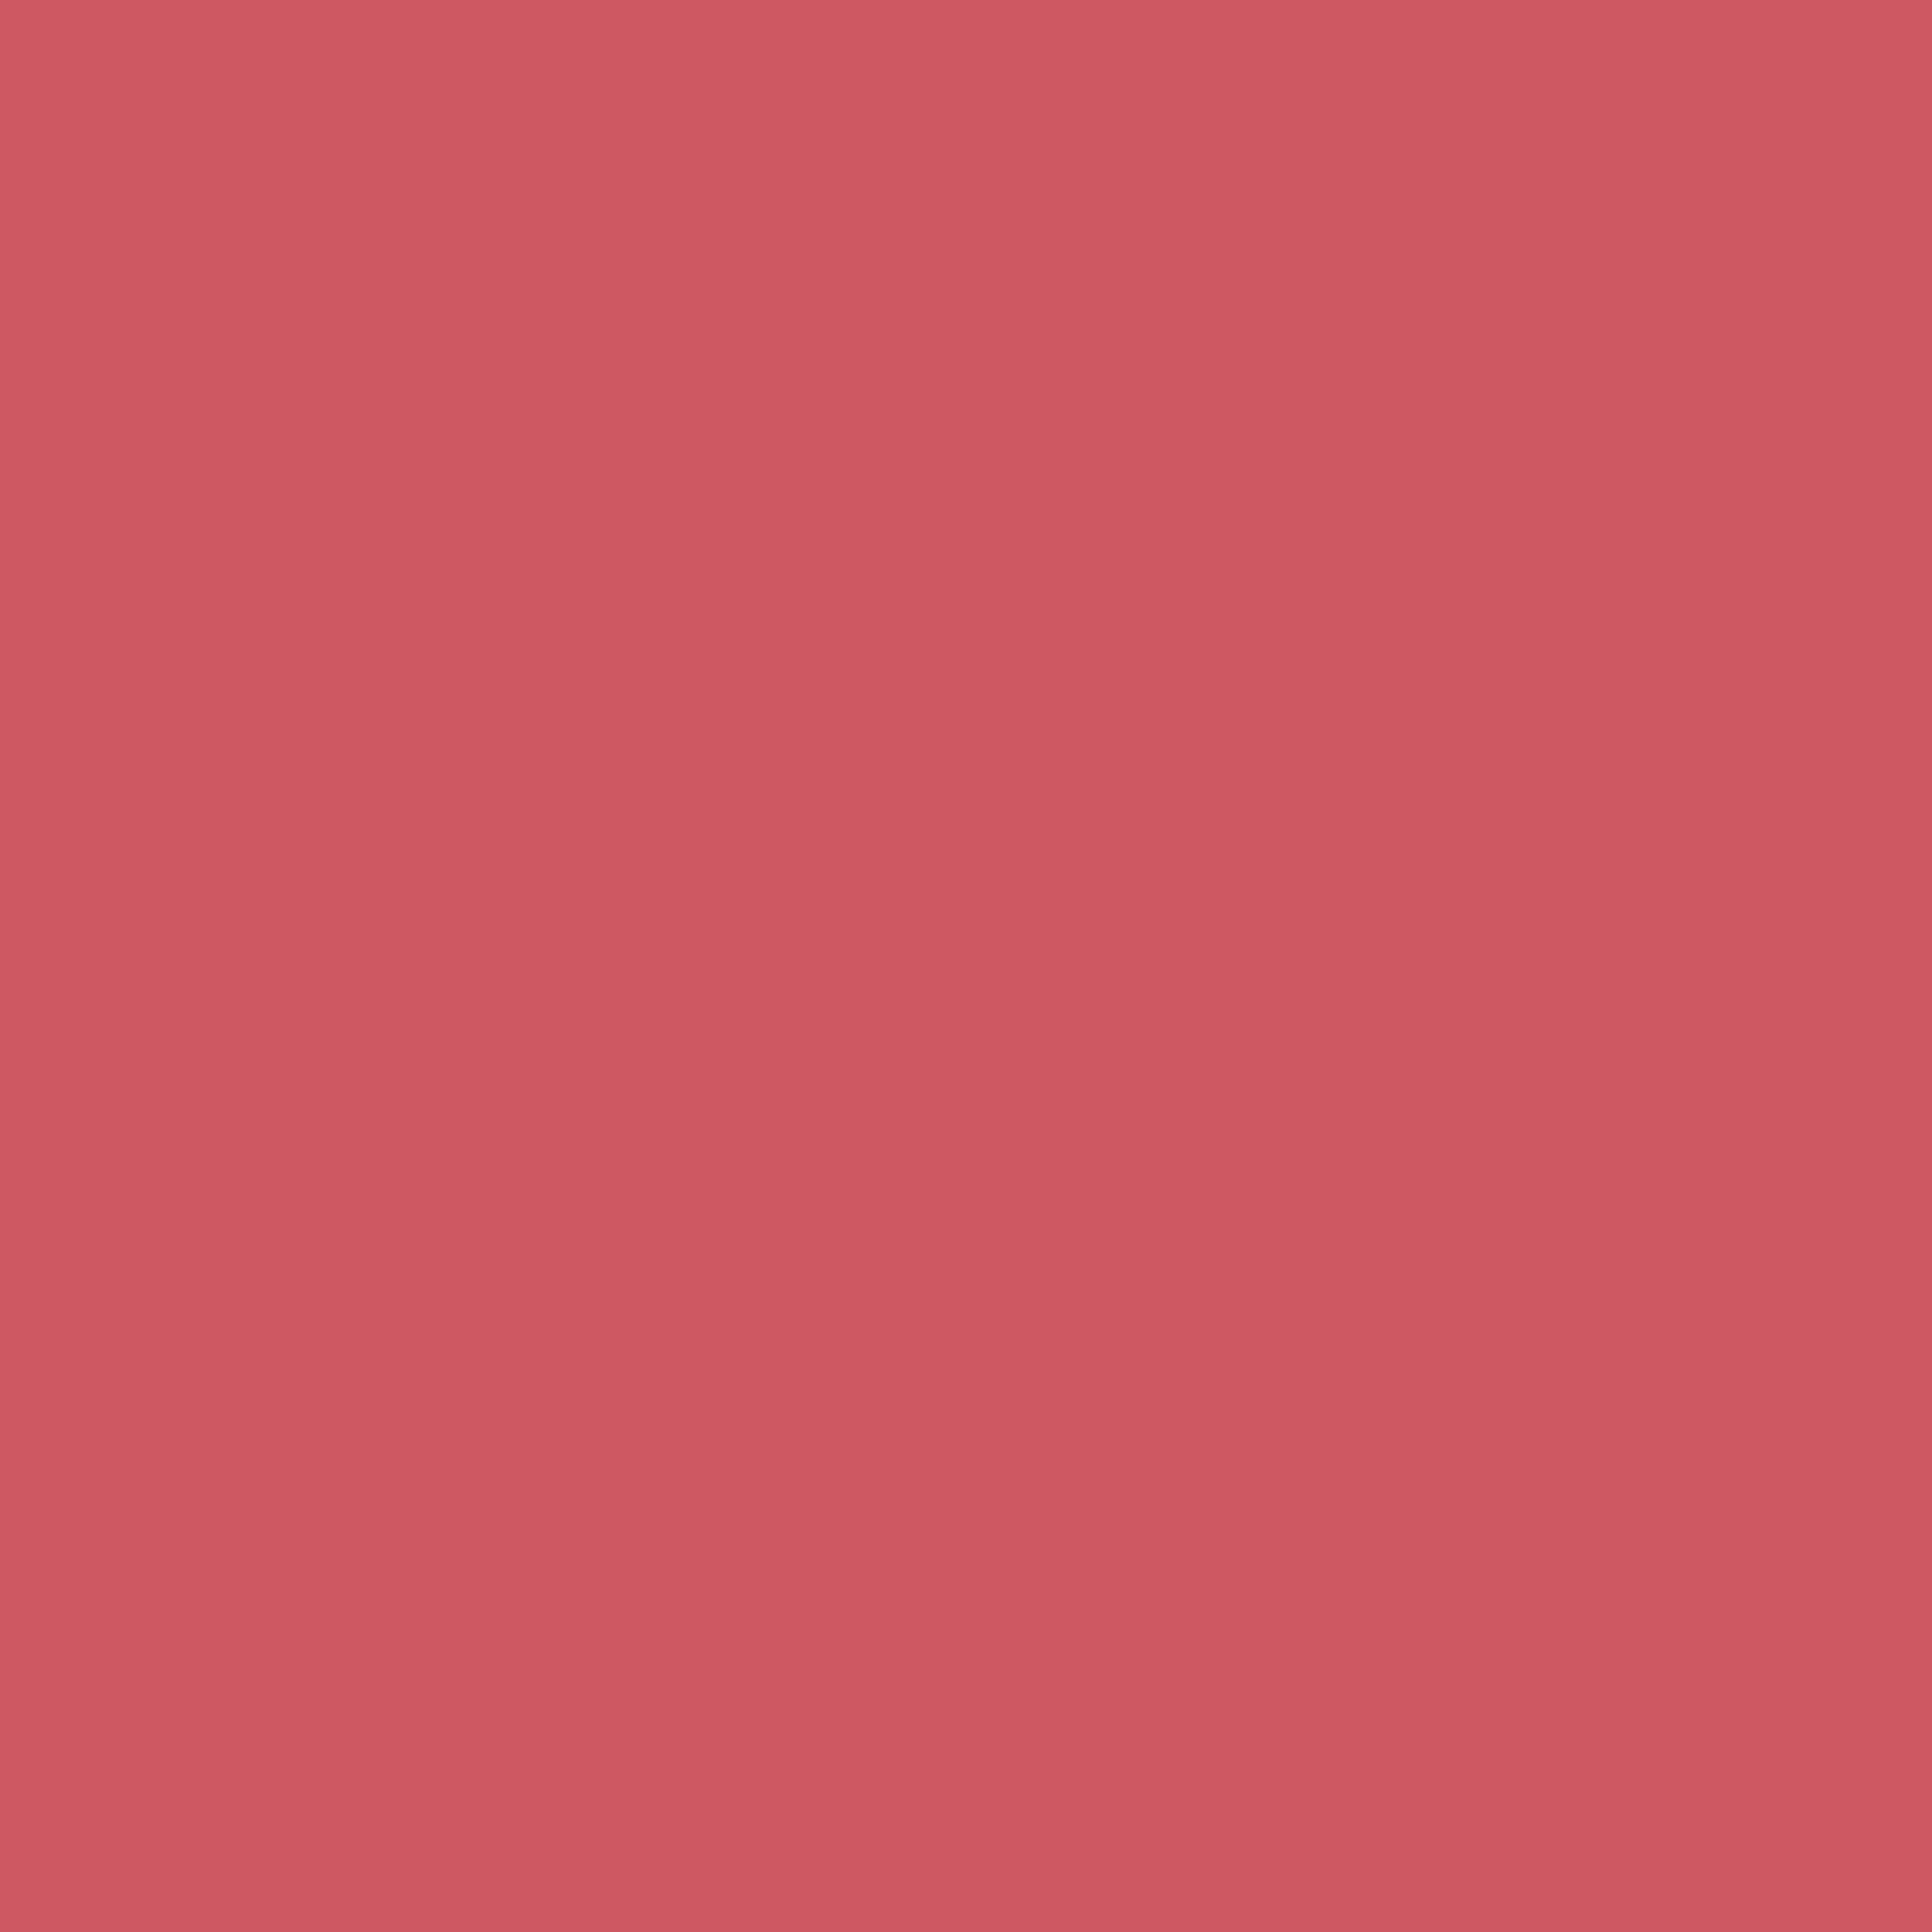 Dark Red   HEX: #CC5760   RGB: 2014, 87, 96   CMYK: 16, 80, 55, 2